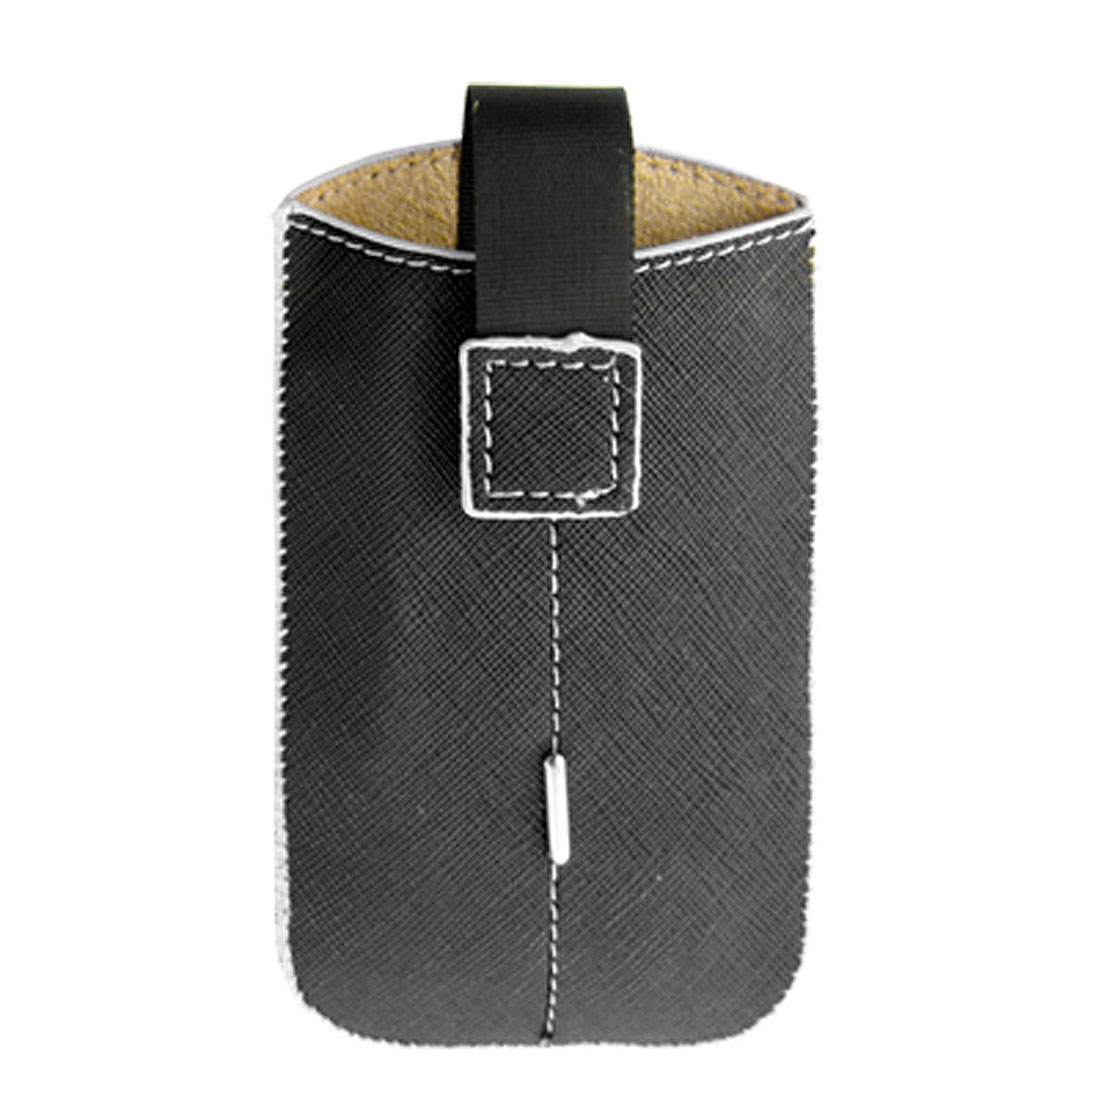 Black Faux Leather Pull Tab Pouch Holder Case for iPhone 4 4G